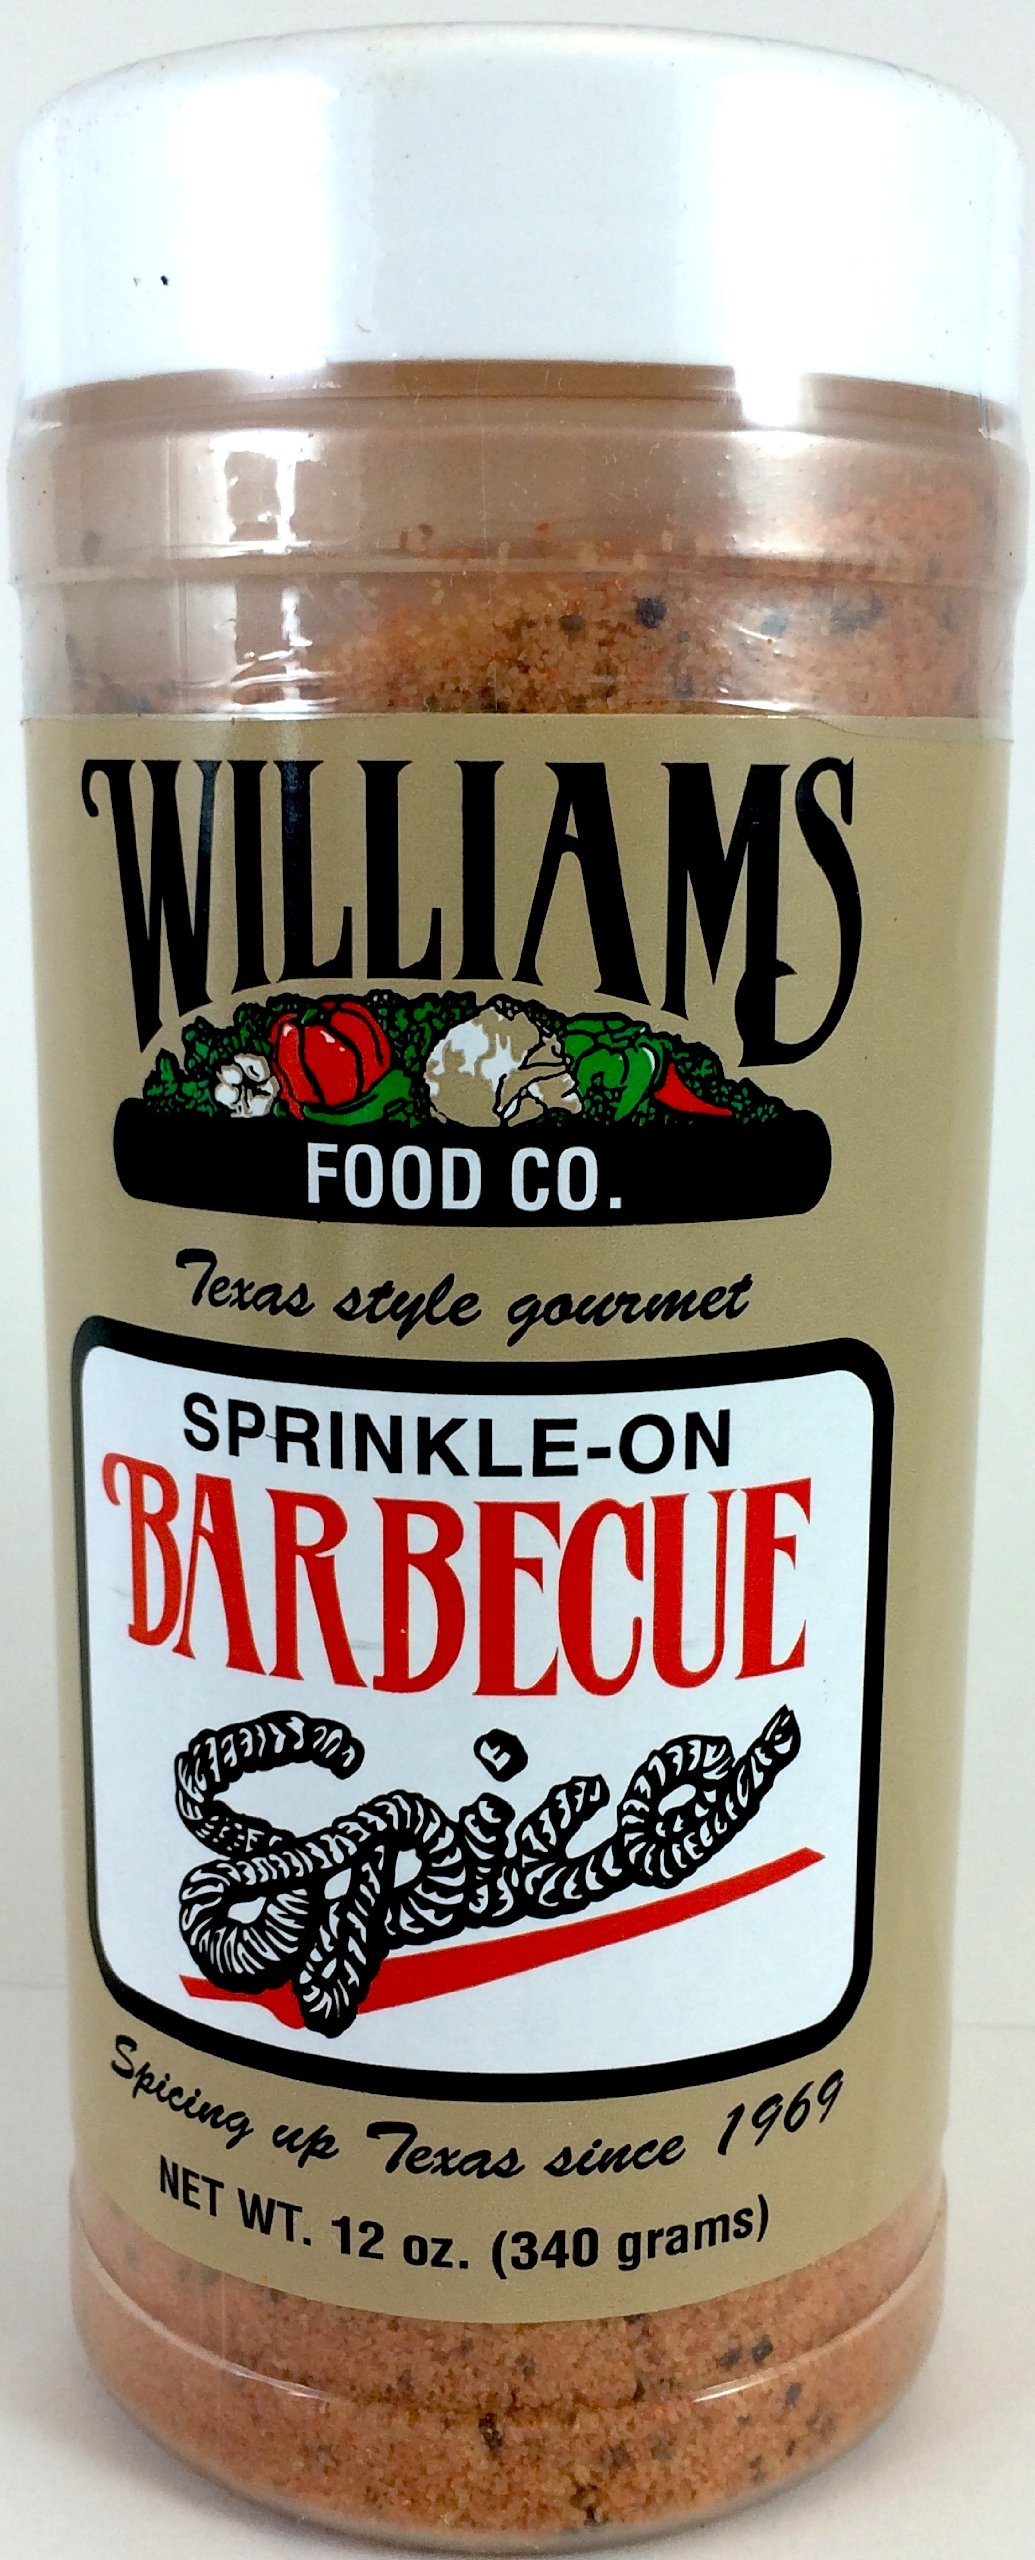 Williams Food Co. Sprinkle-on Barbecue Spice, 12oz (Pack of 1)